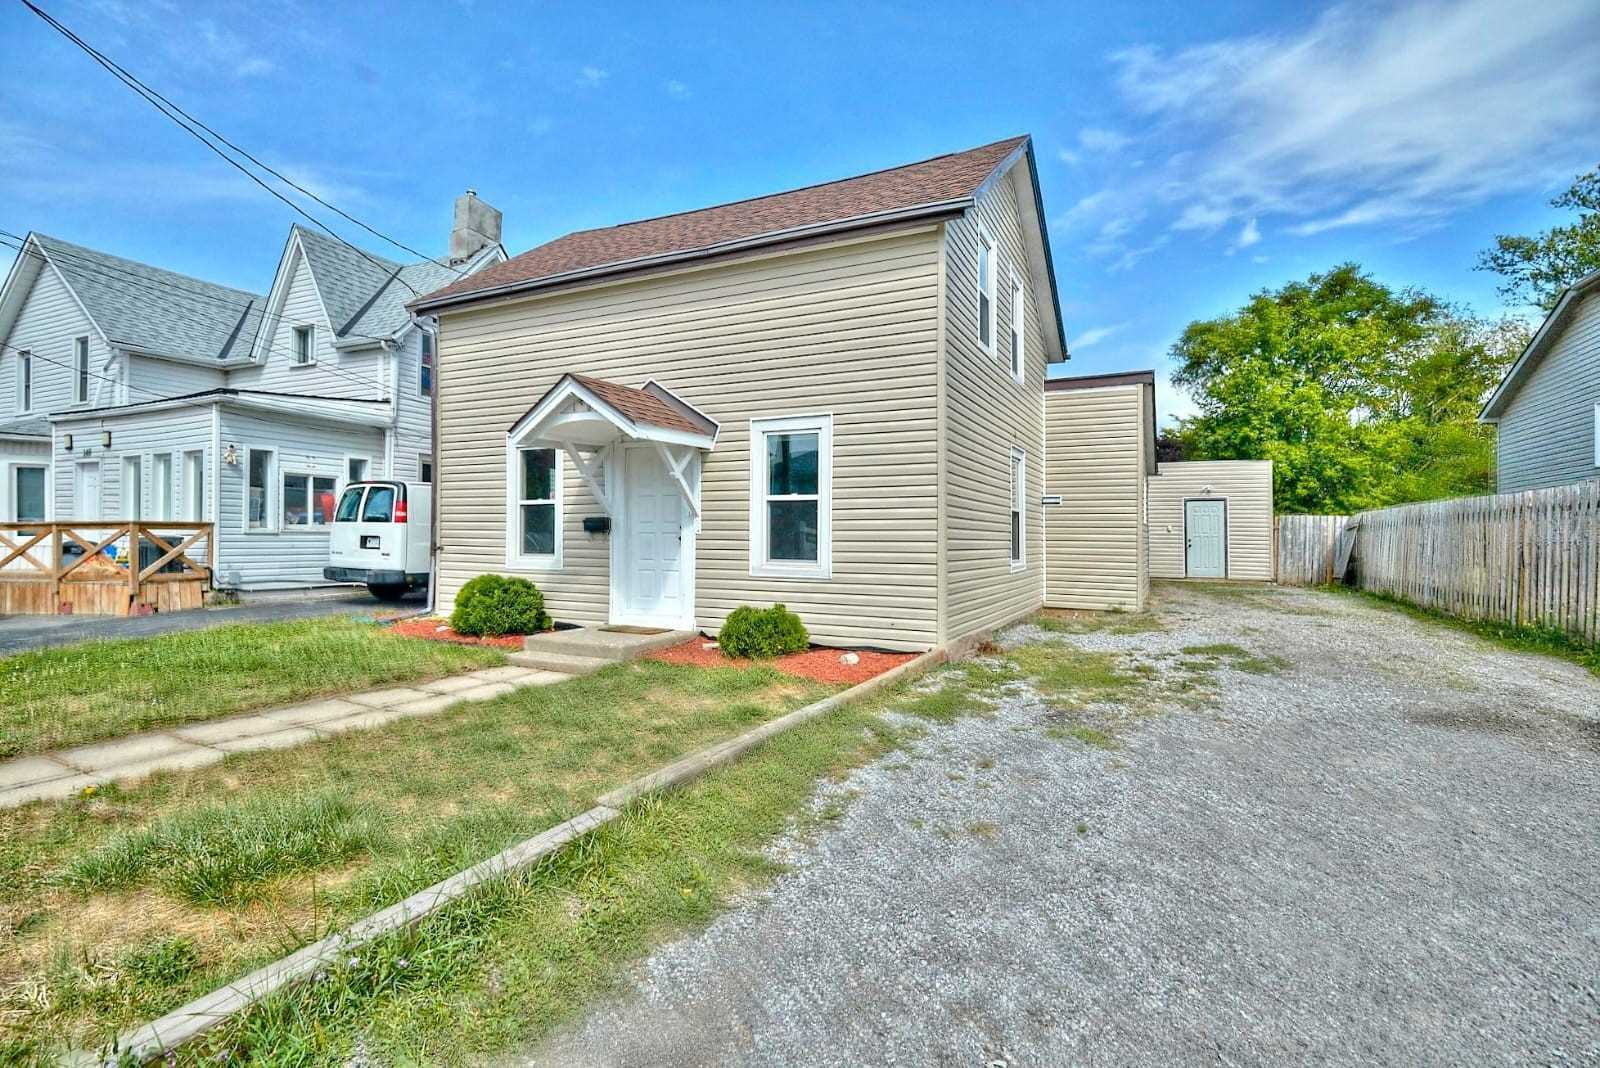 For Sale: 146 Oakdale Avenue, St Catharines, ON | 3 Bed, 2 Bath House for $379999.00.